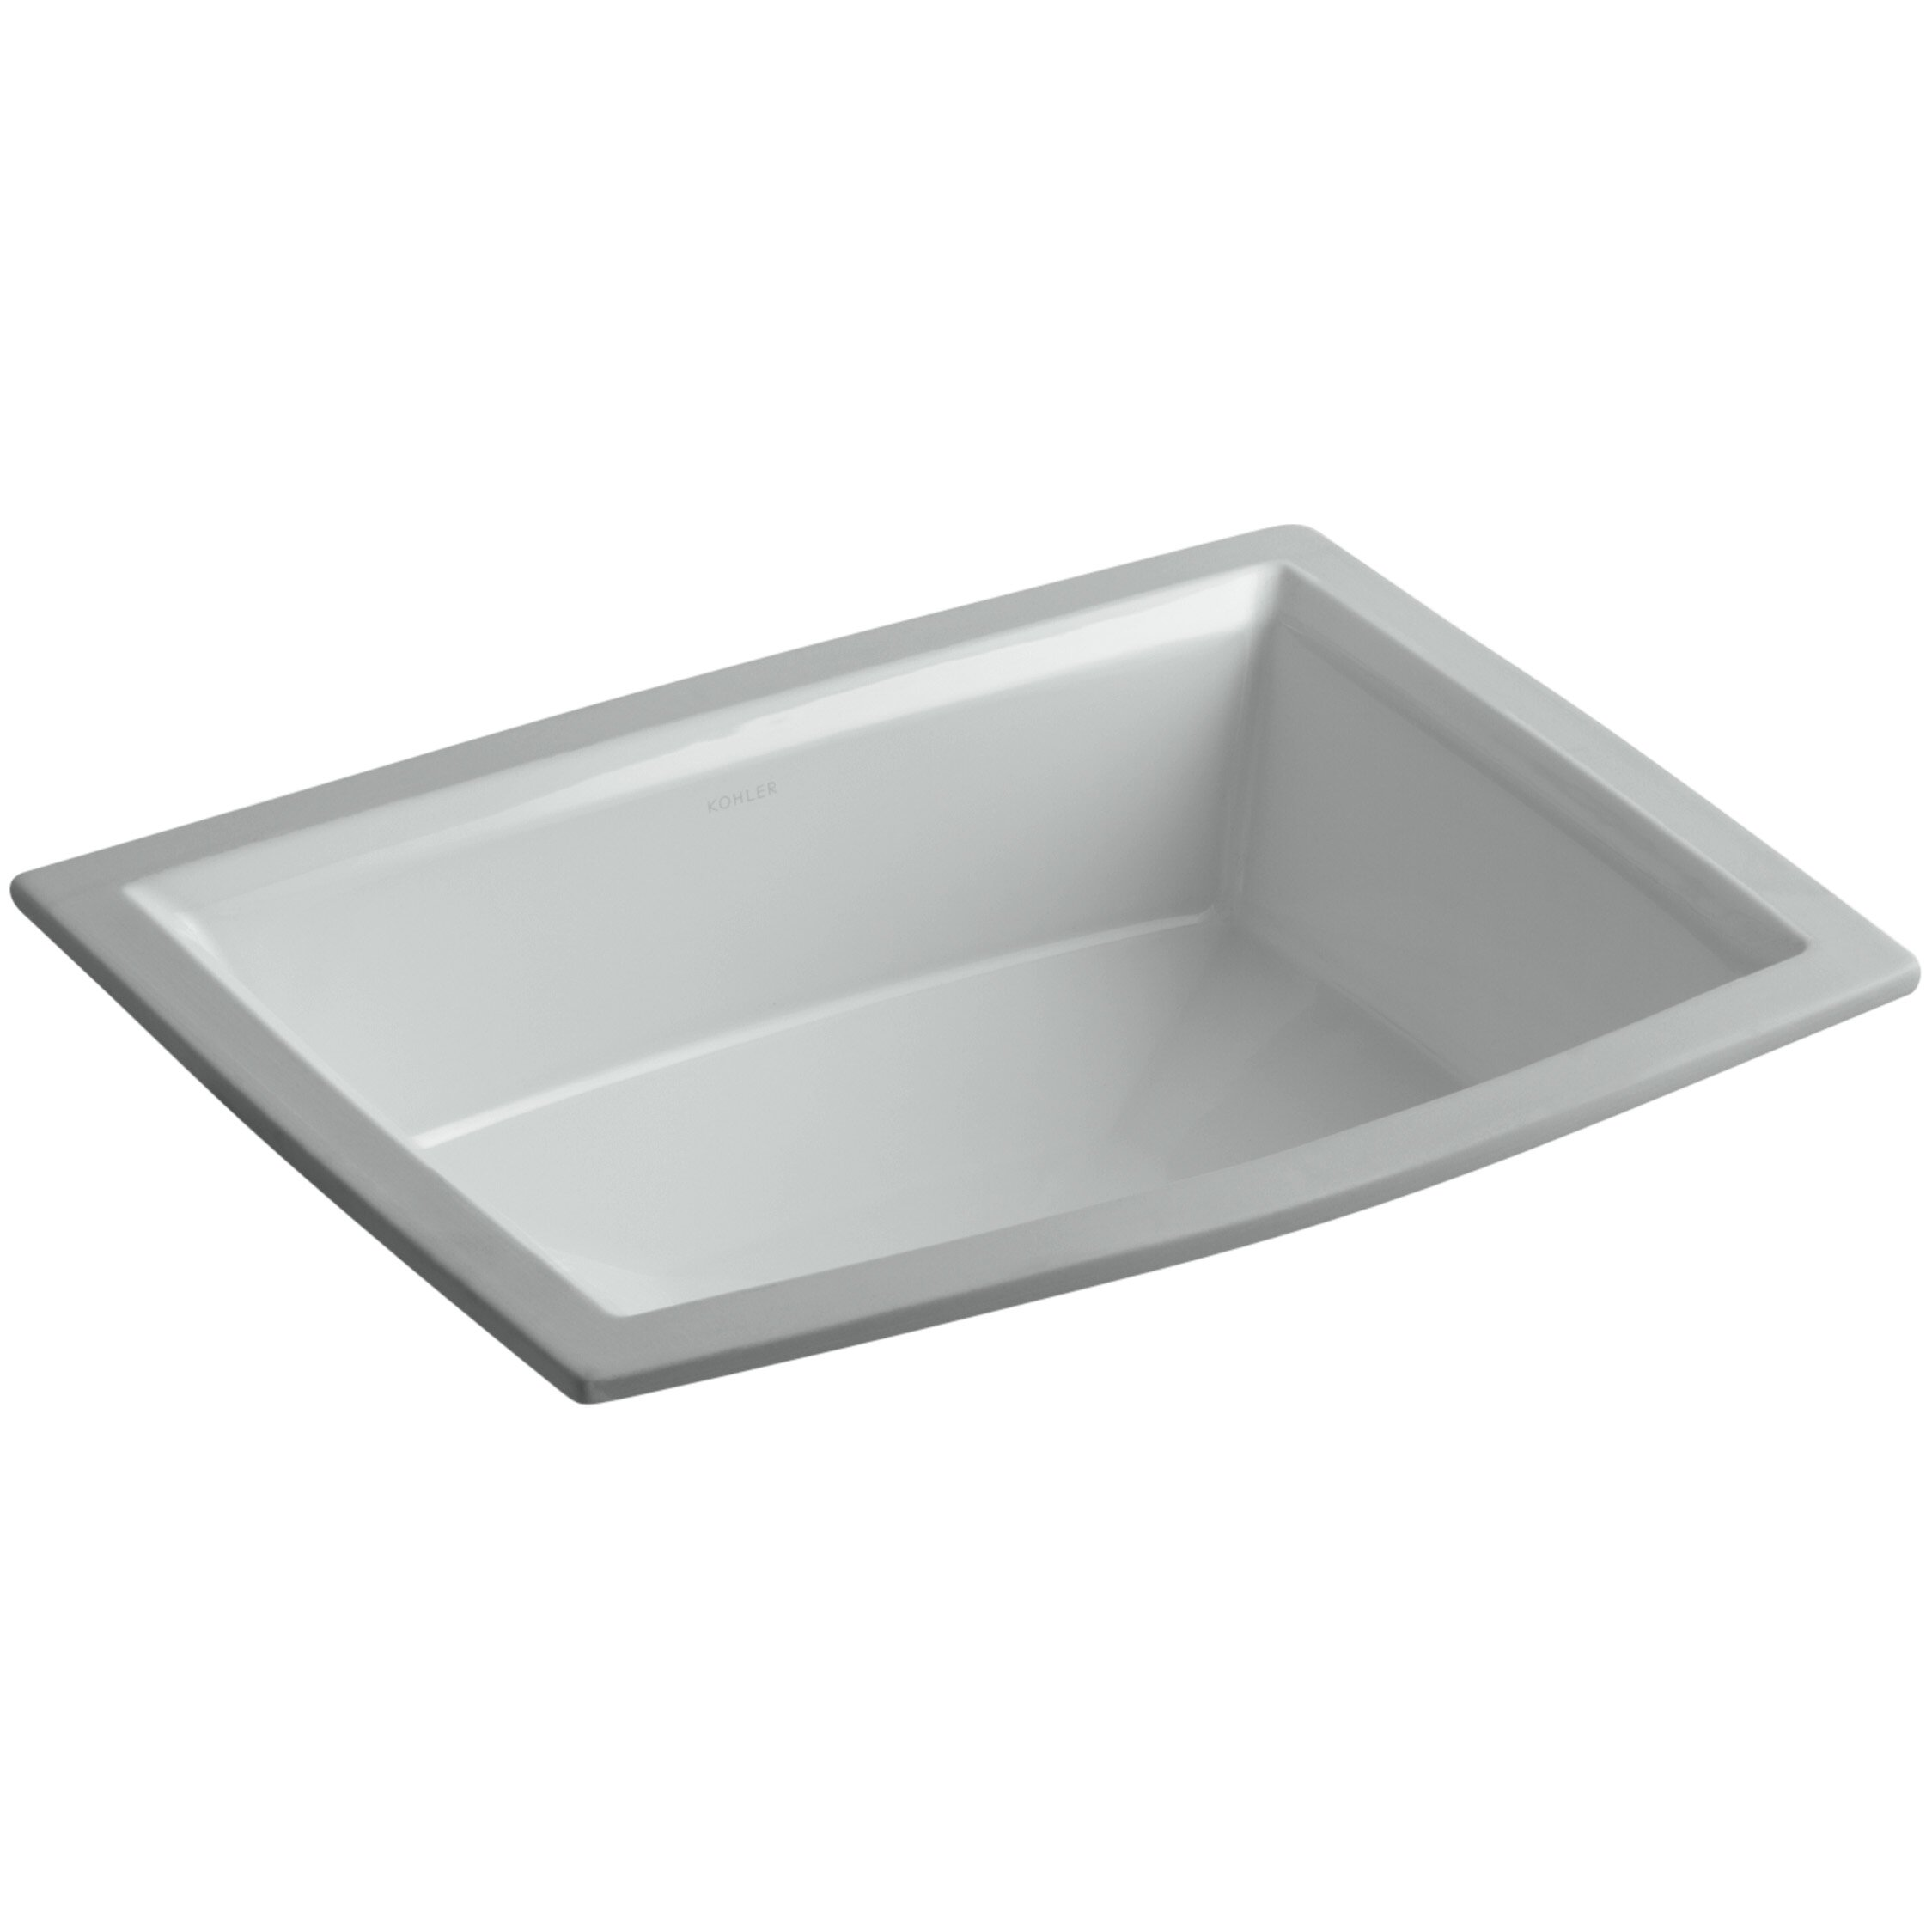 Kohler K 2355 0 Archer Undermount Bathroom Sink - Bathroom Design ...